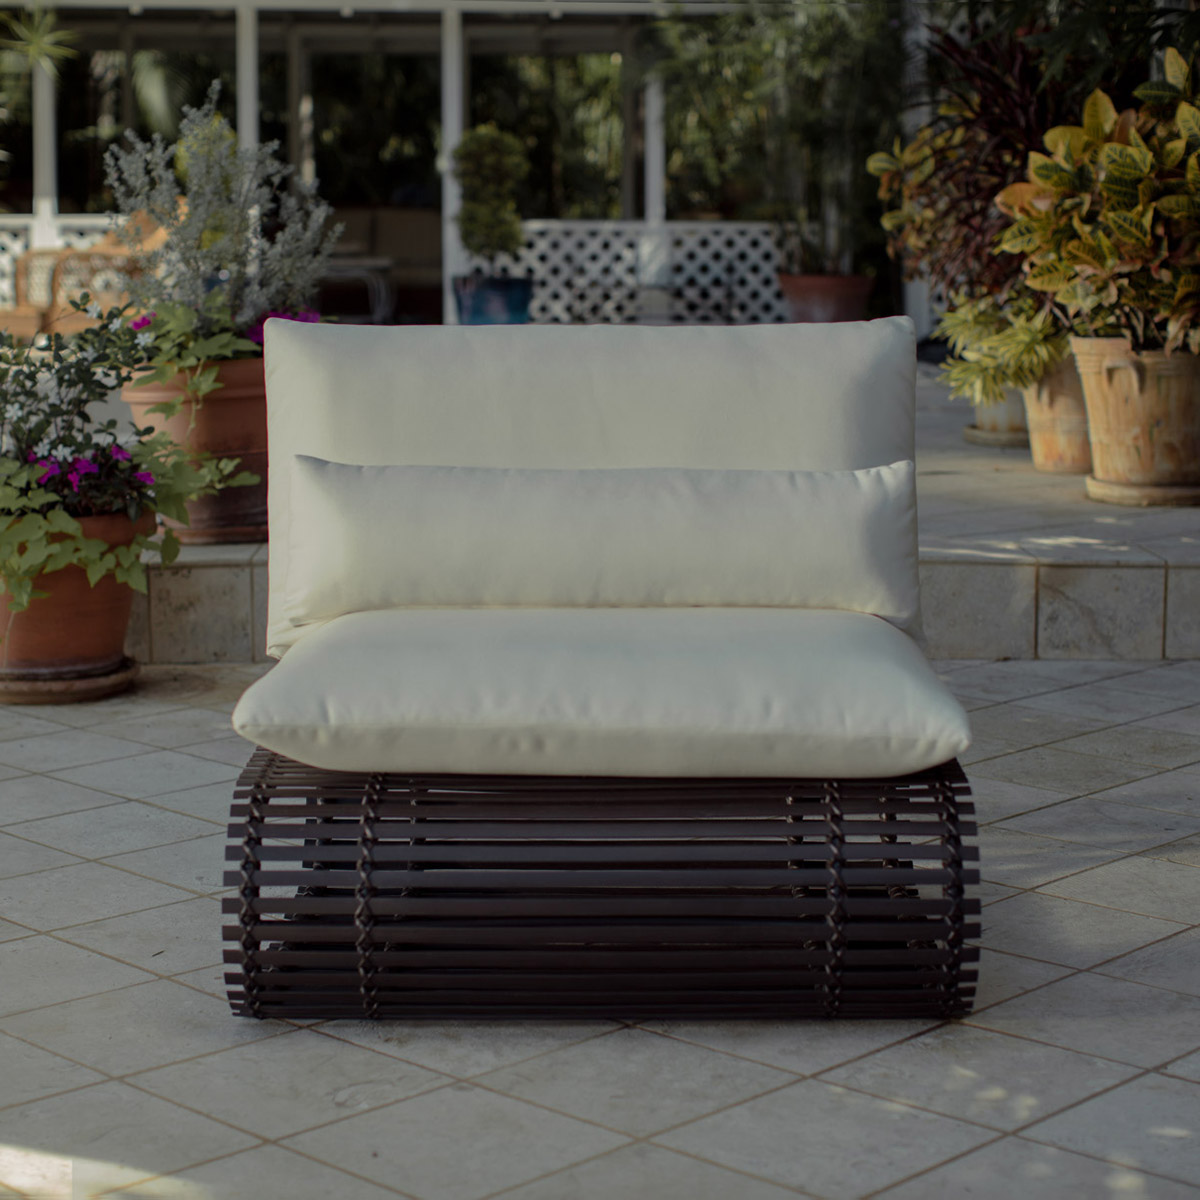 stori modern Novel outdoor Lounge chair